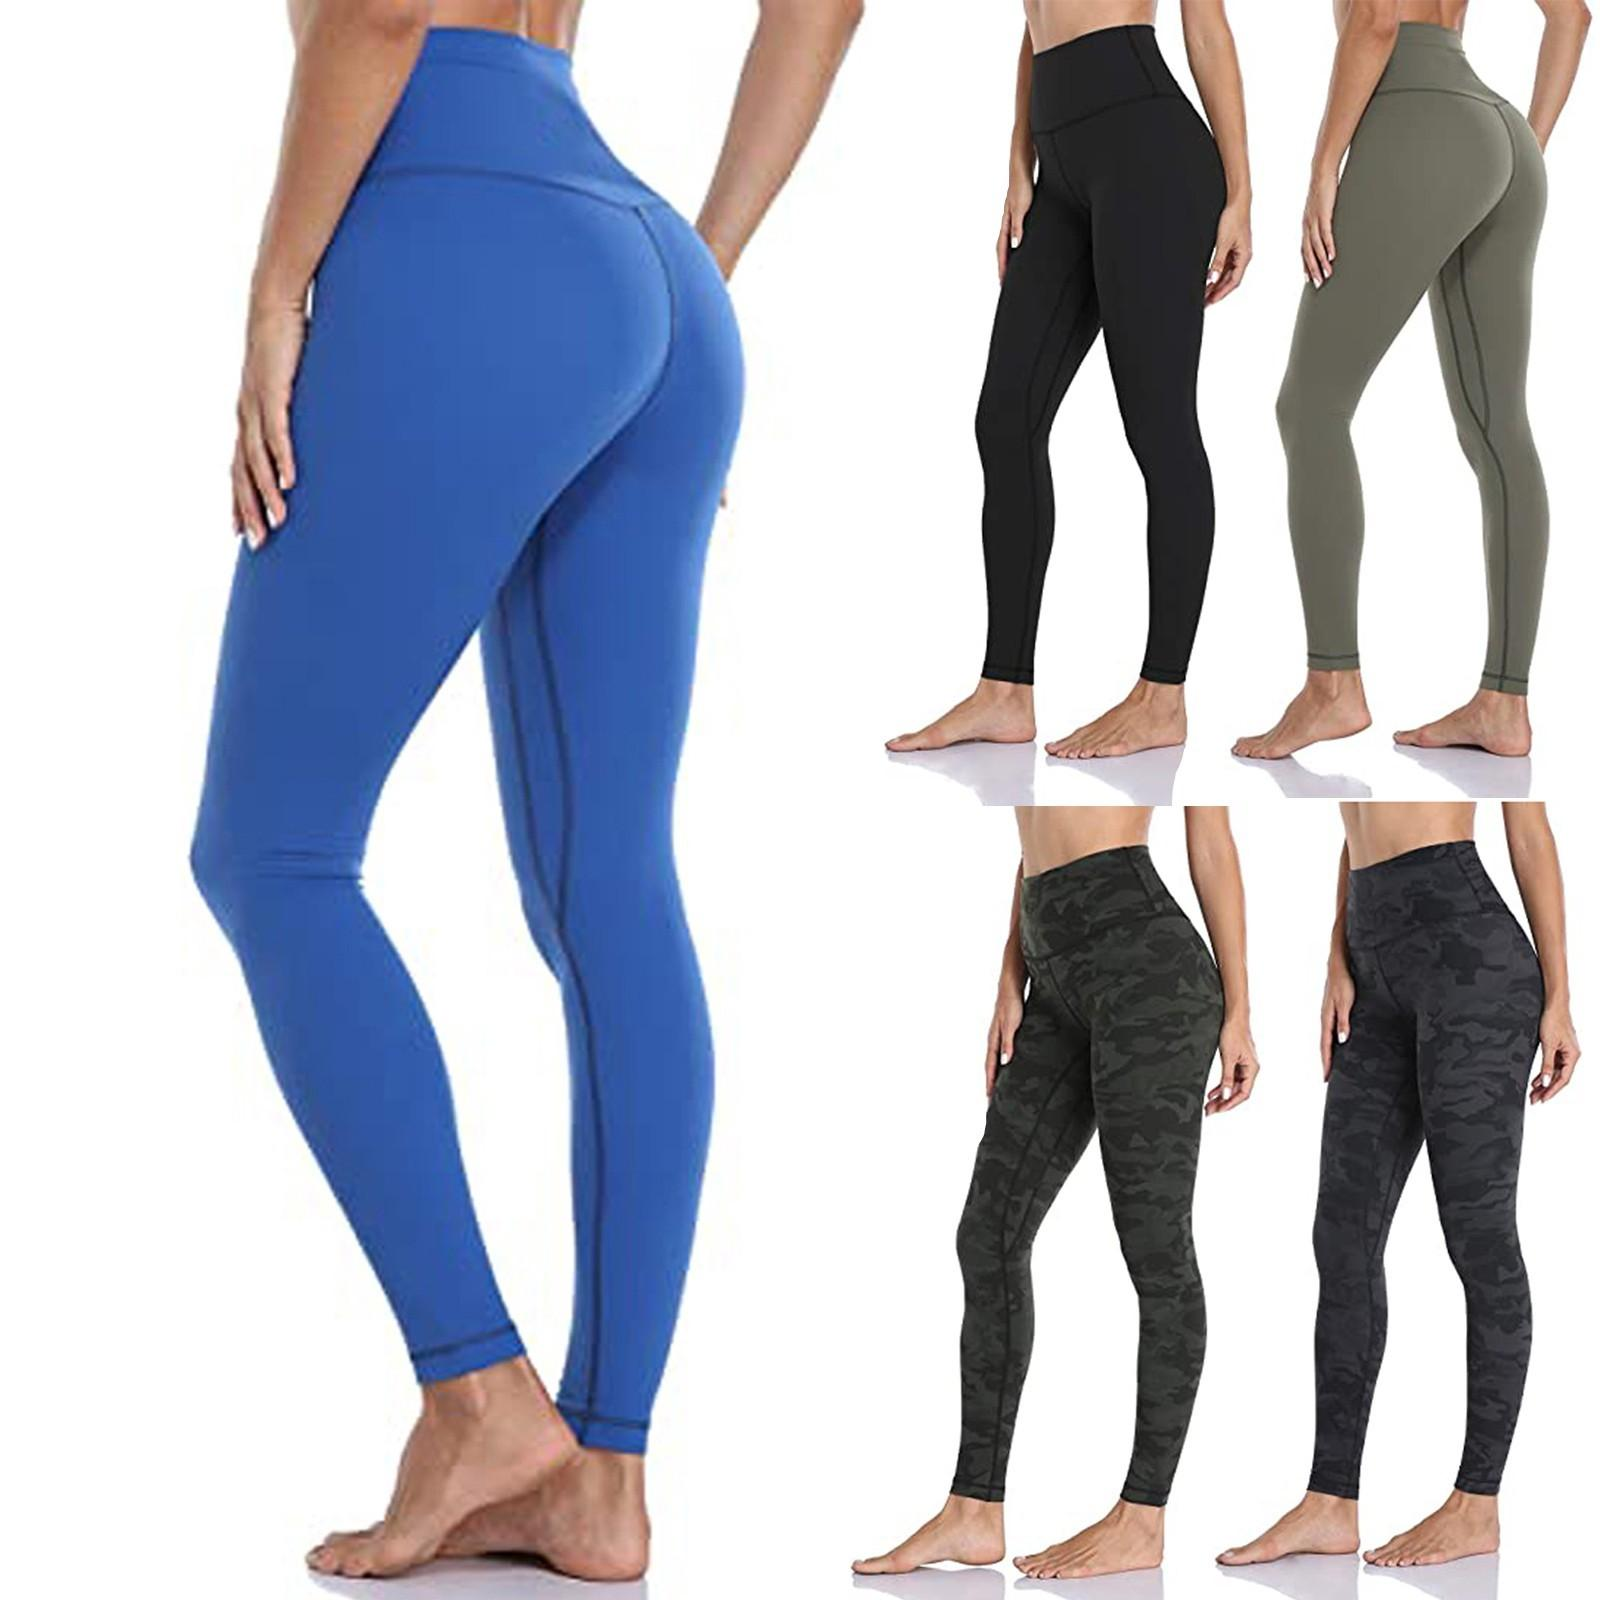 Taille haute Souffe Leggings Push Up Leggins Sport Femmes Fitness Running Pantalon Yoga Pantalon Energy Sans soudure Jambières Gym Gold # 50